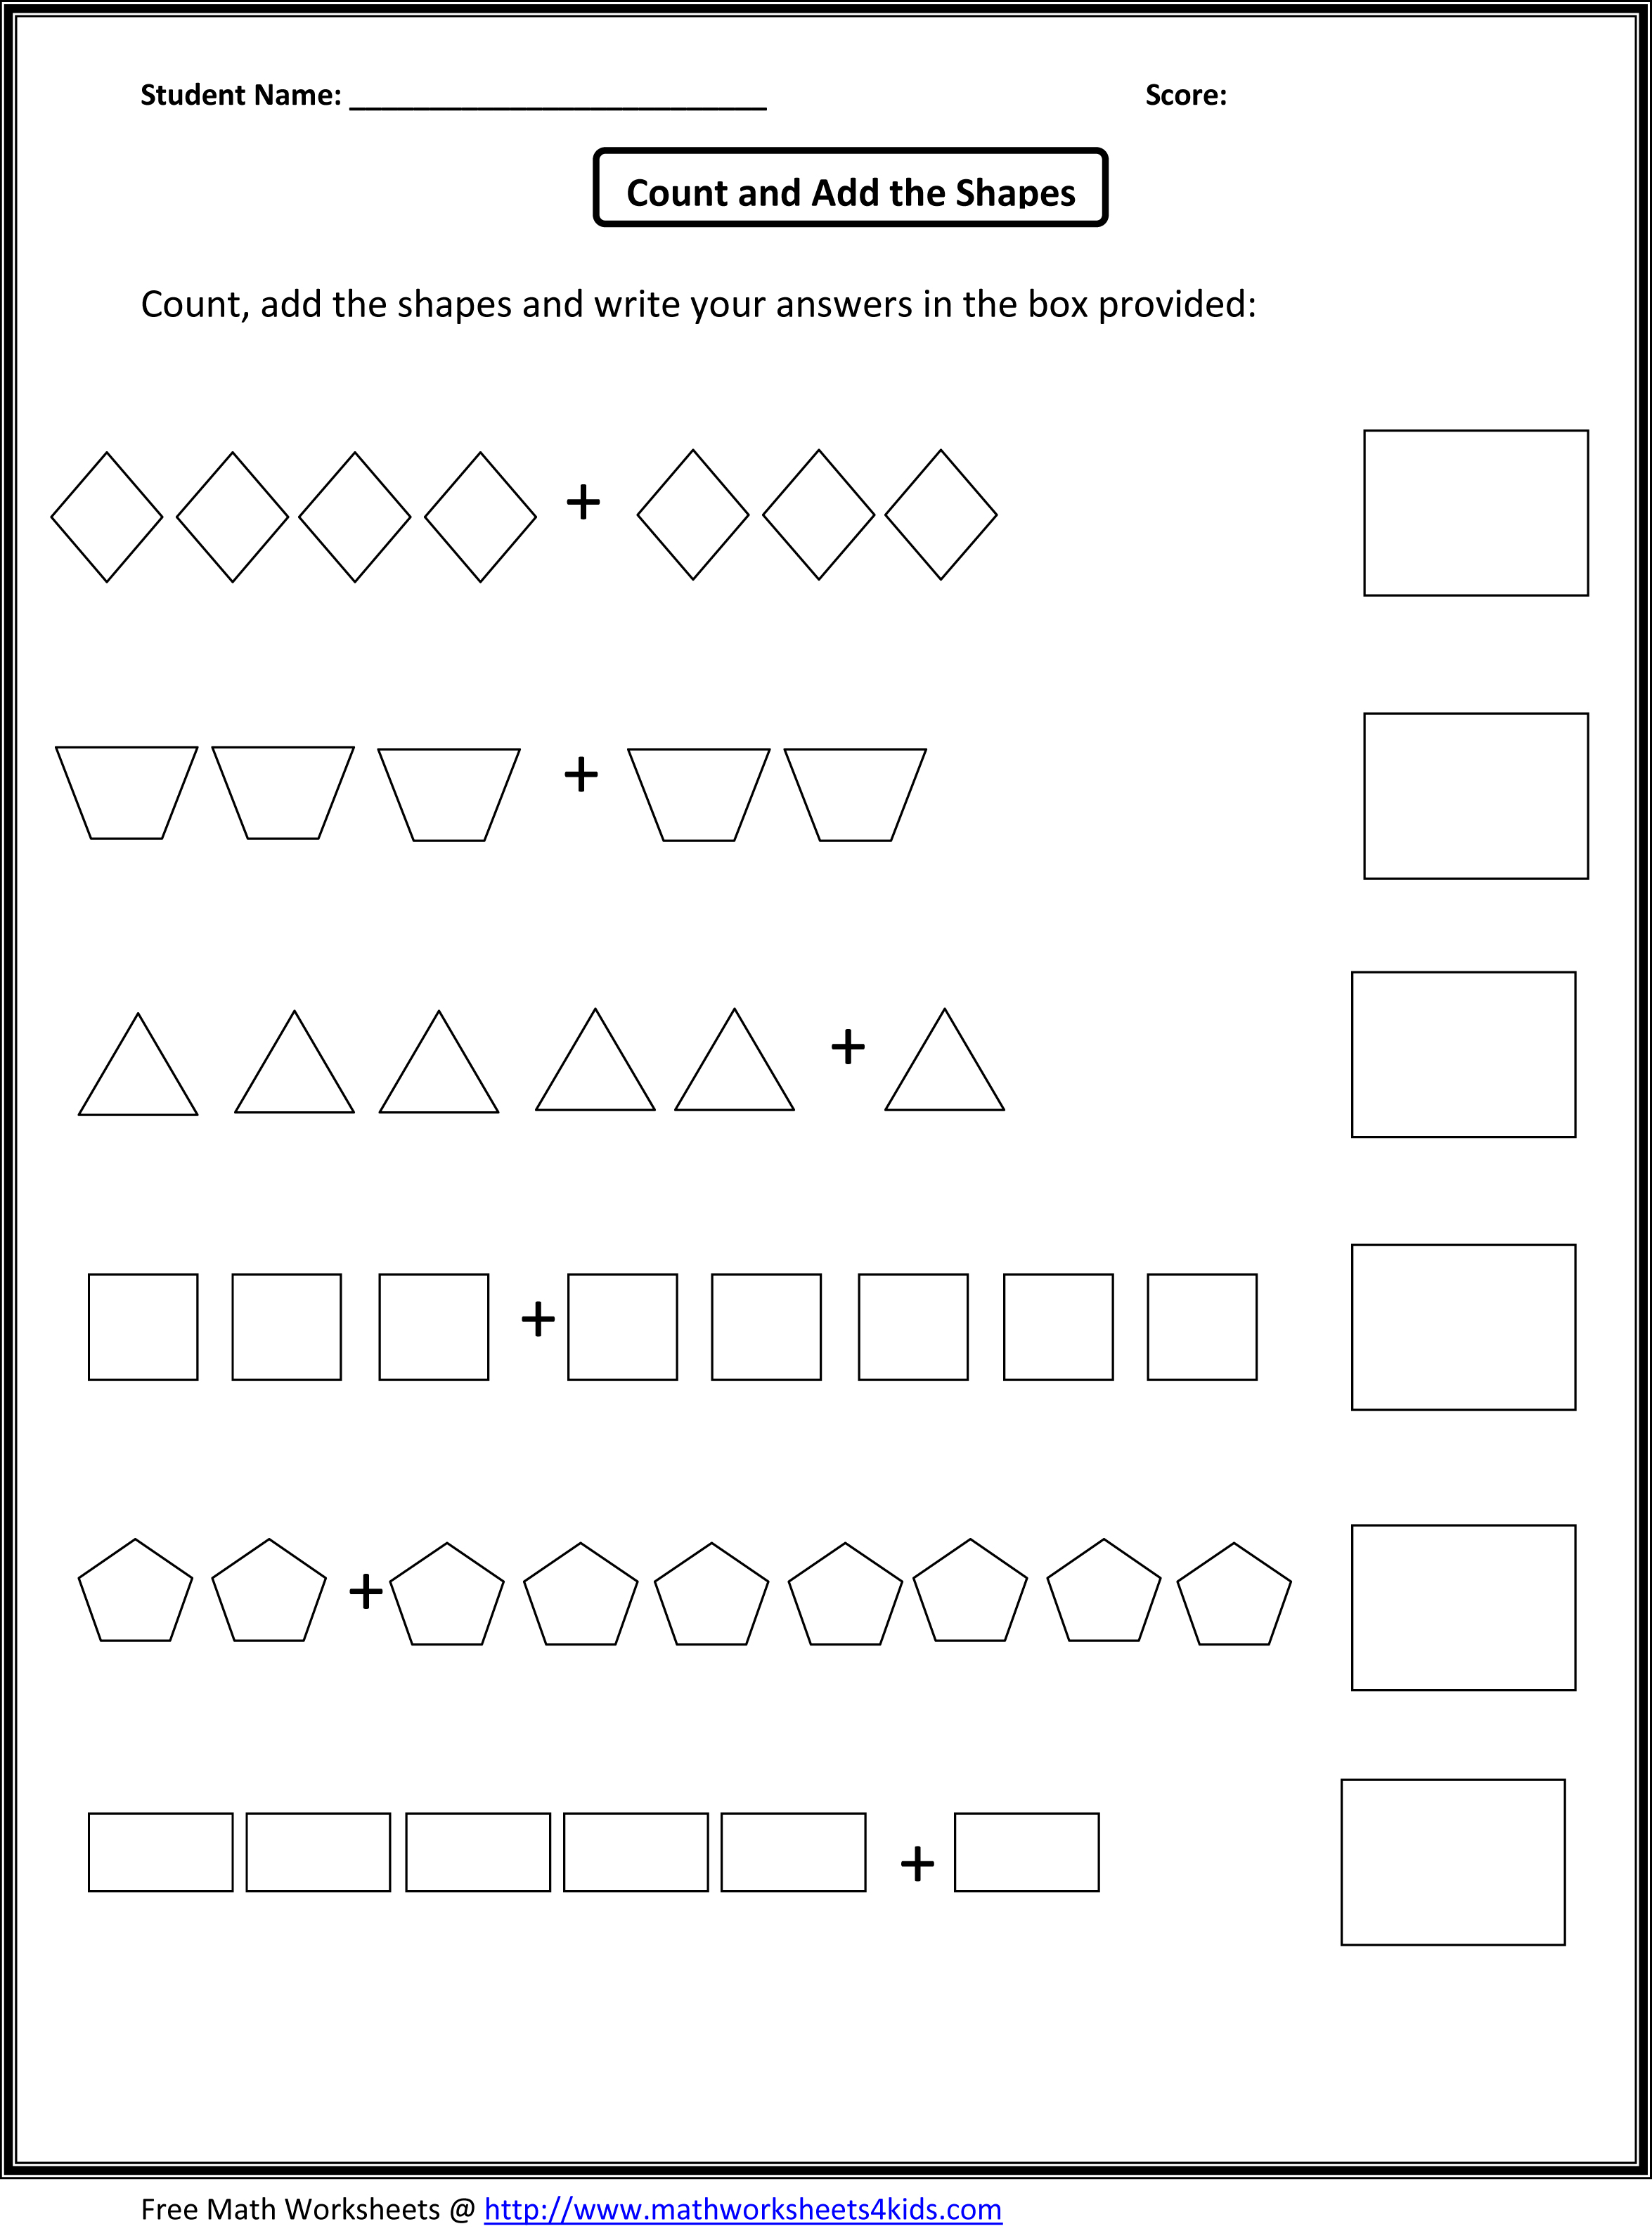 15 Best Images Of Counting 15 Worksheets